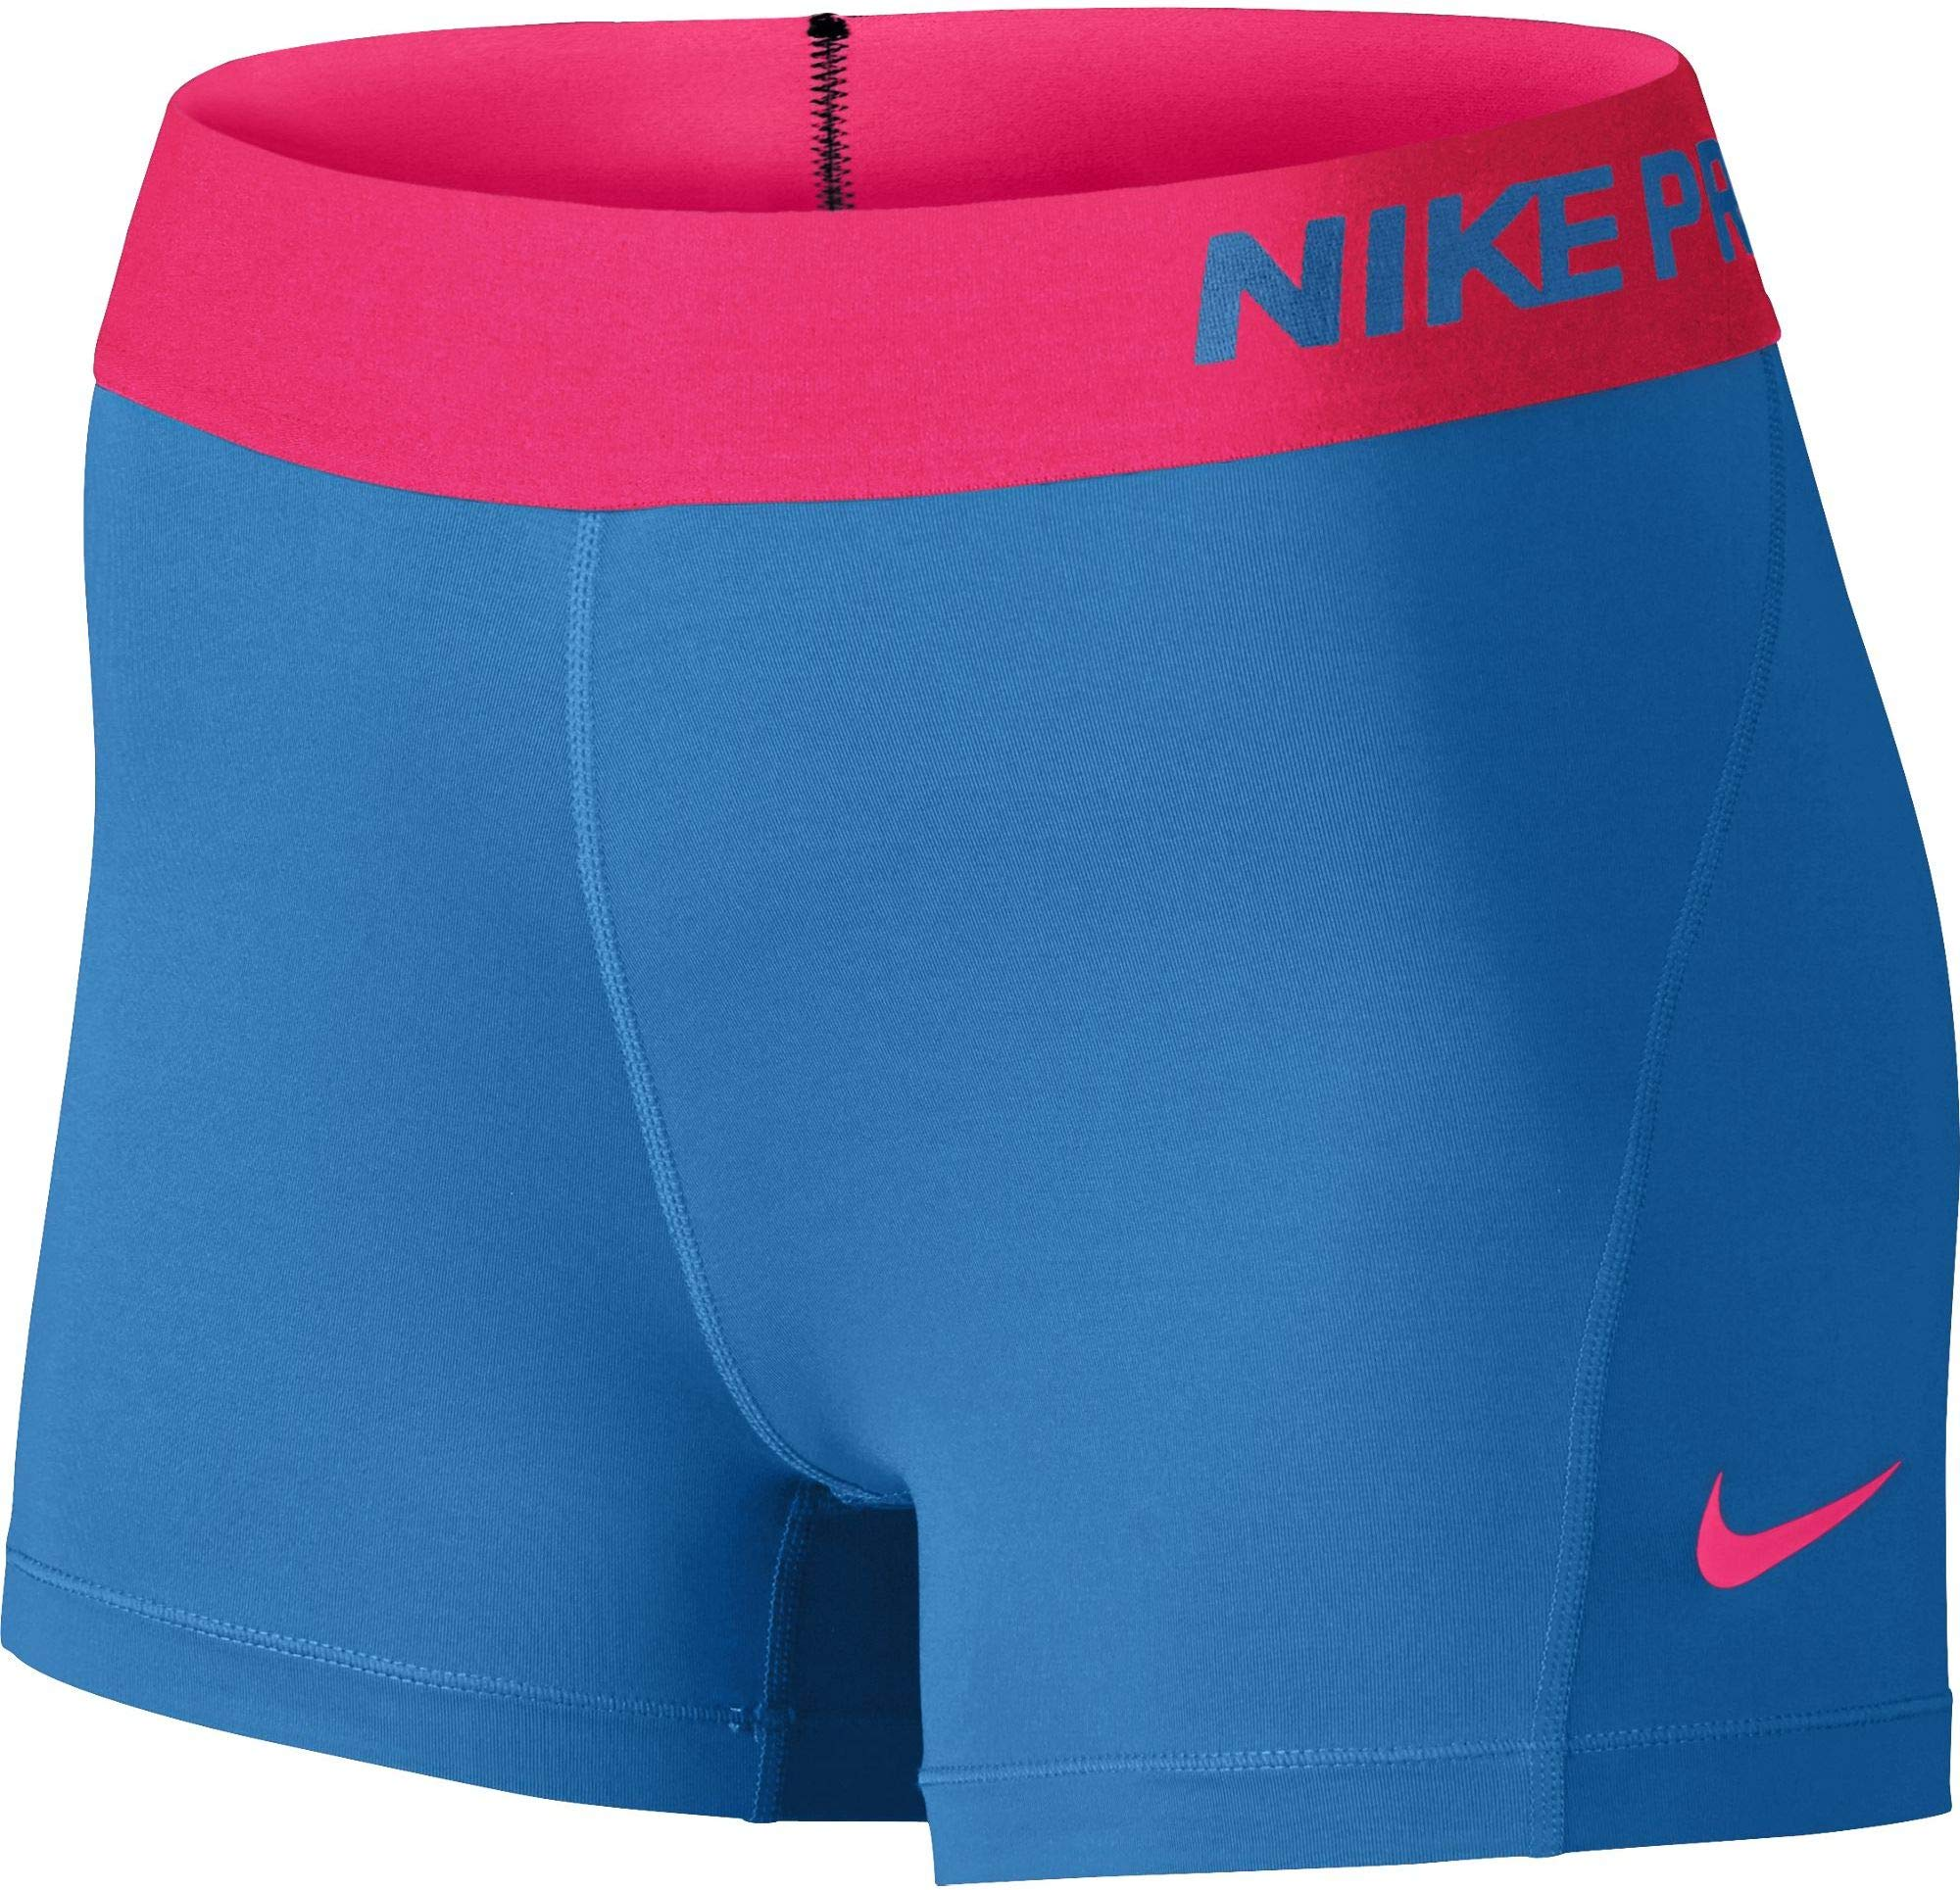 Nike Women's Pro Cool 3-Inch Training Shorts (Lt Photo Blue/Hyper Pink/Hyper Pink/X-Small)